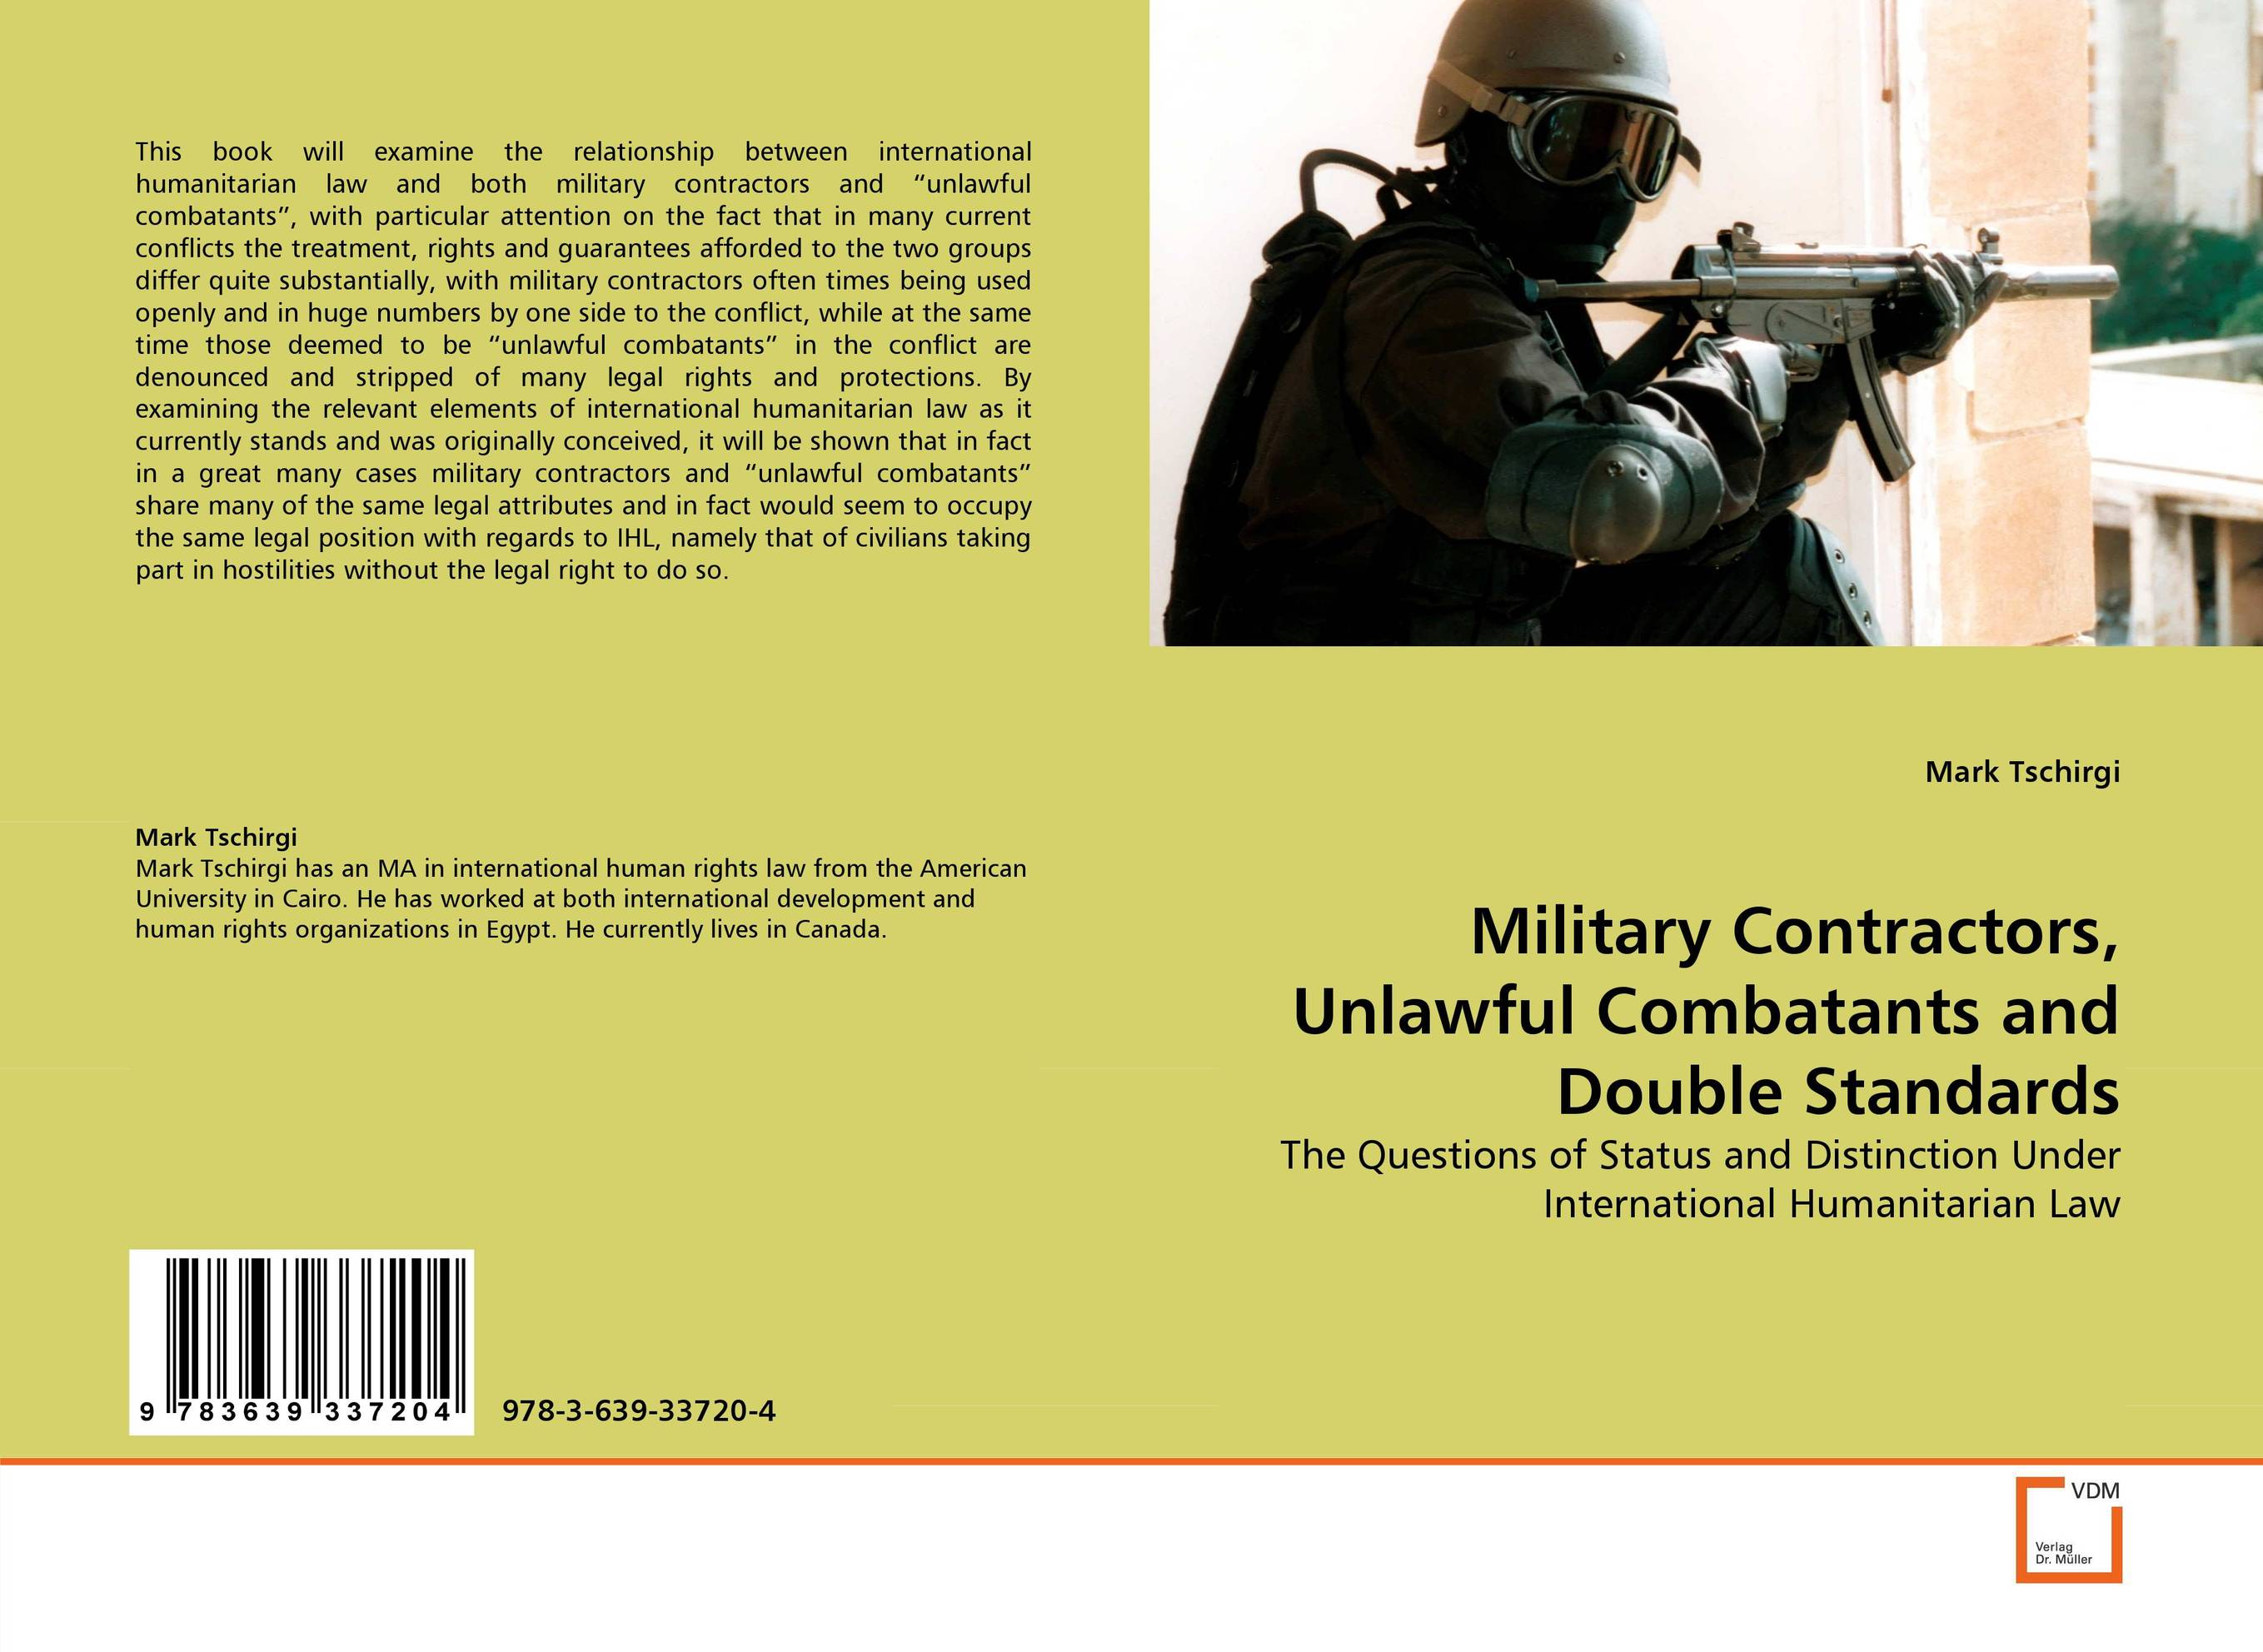 Military Contractors, Unlawful Combatants and Double Standards edited by robert wintemute and mads andenas legal recognition of same sex partnerships